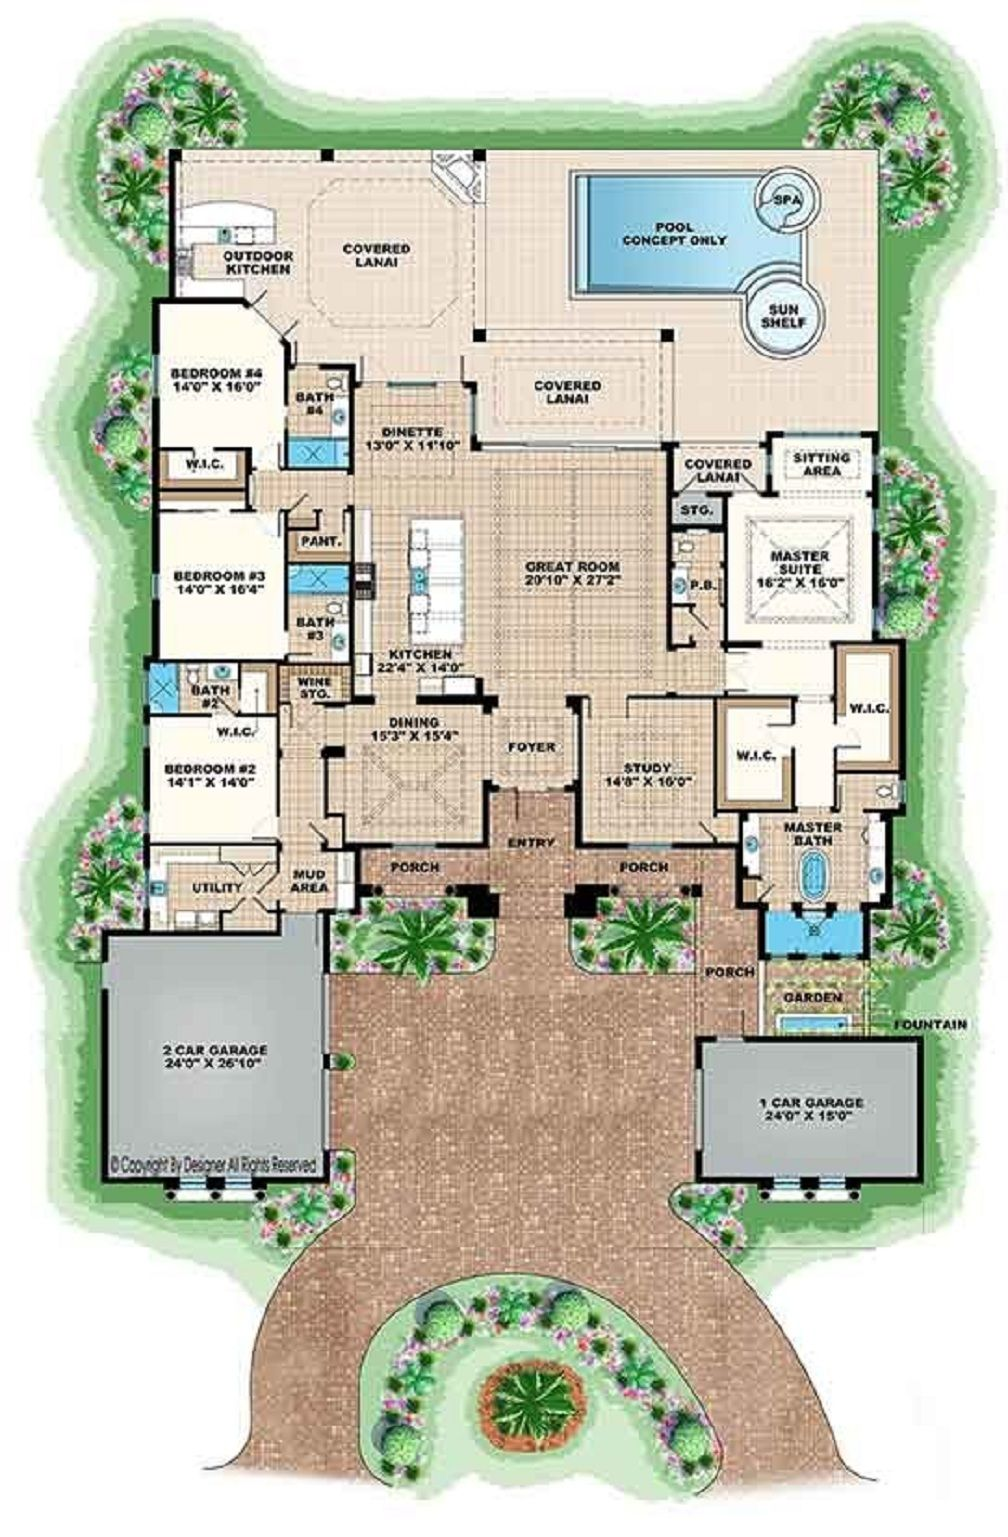 Open Floor Plans For Single Story Spanish Style Homes 4386 Sq Ft With 4 Bedr Mediterranean Style House Plans Mediterranean Floor Plans Mediterranean House Plan